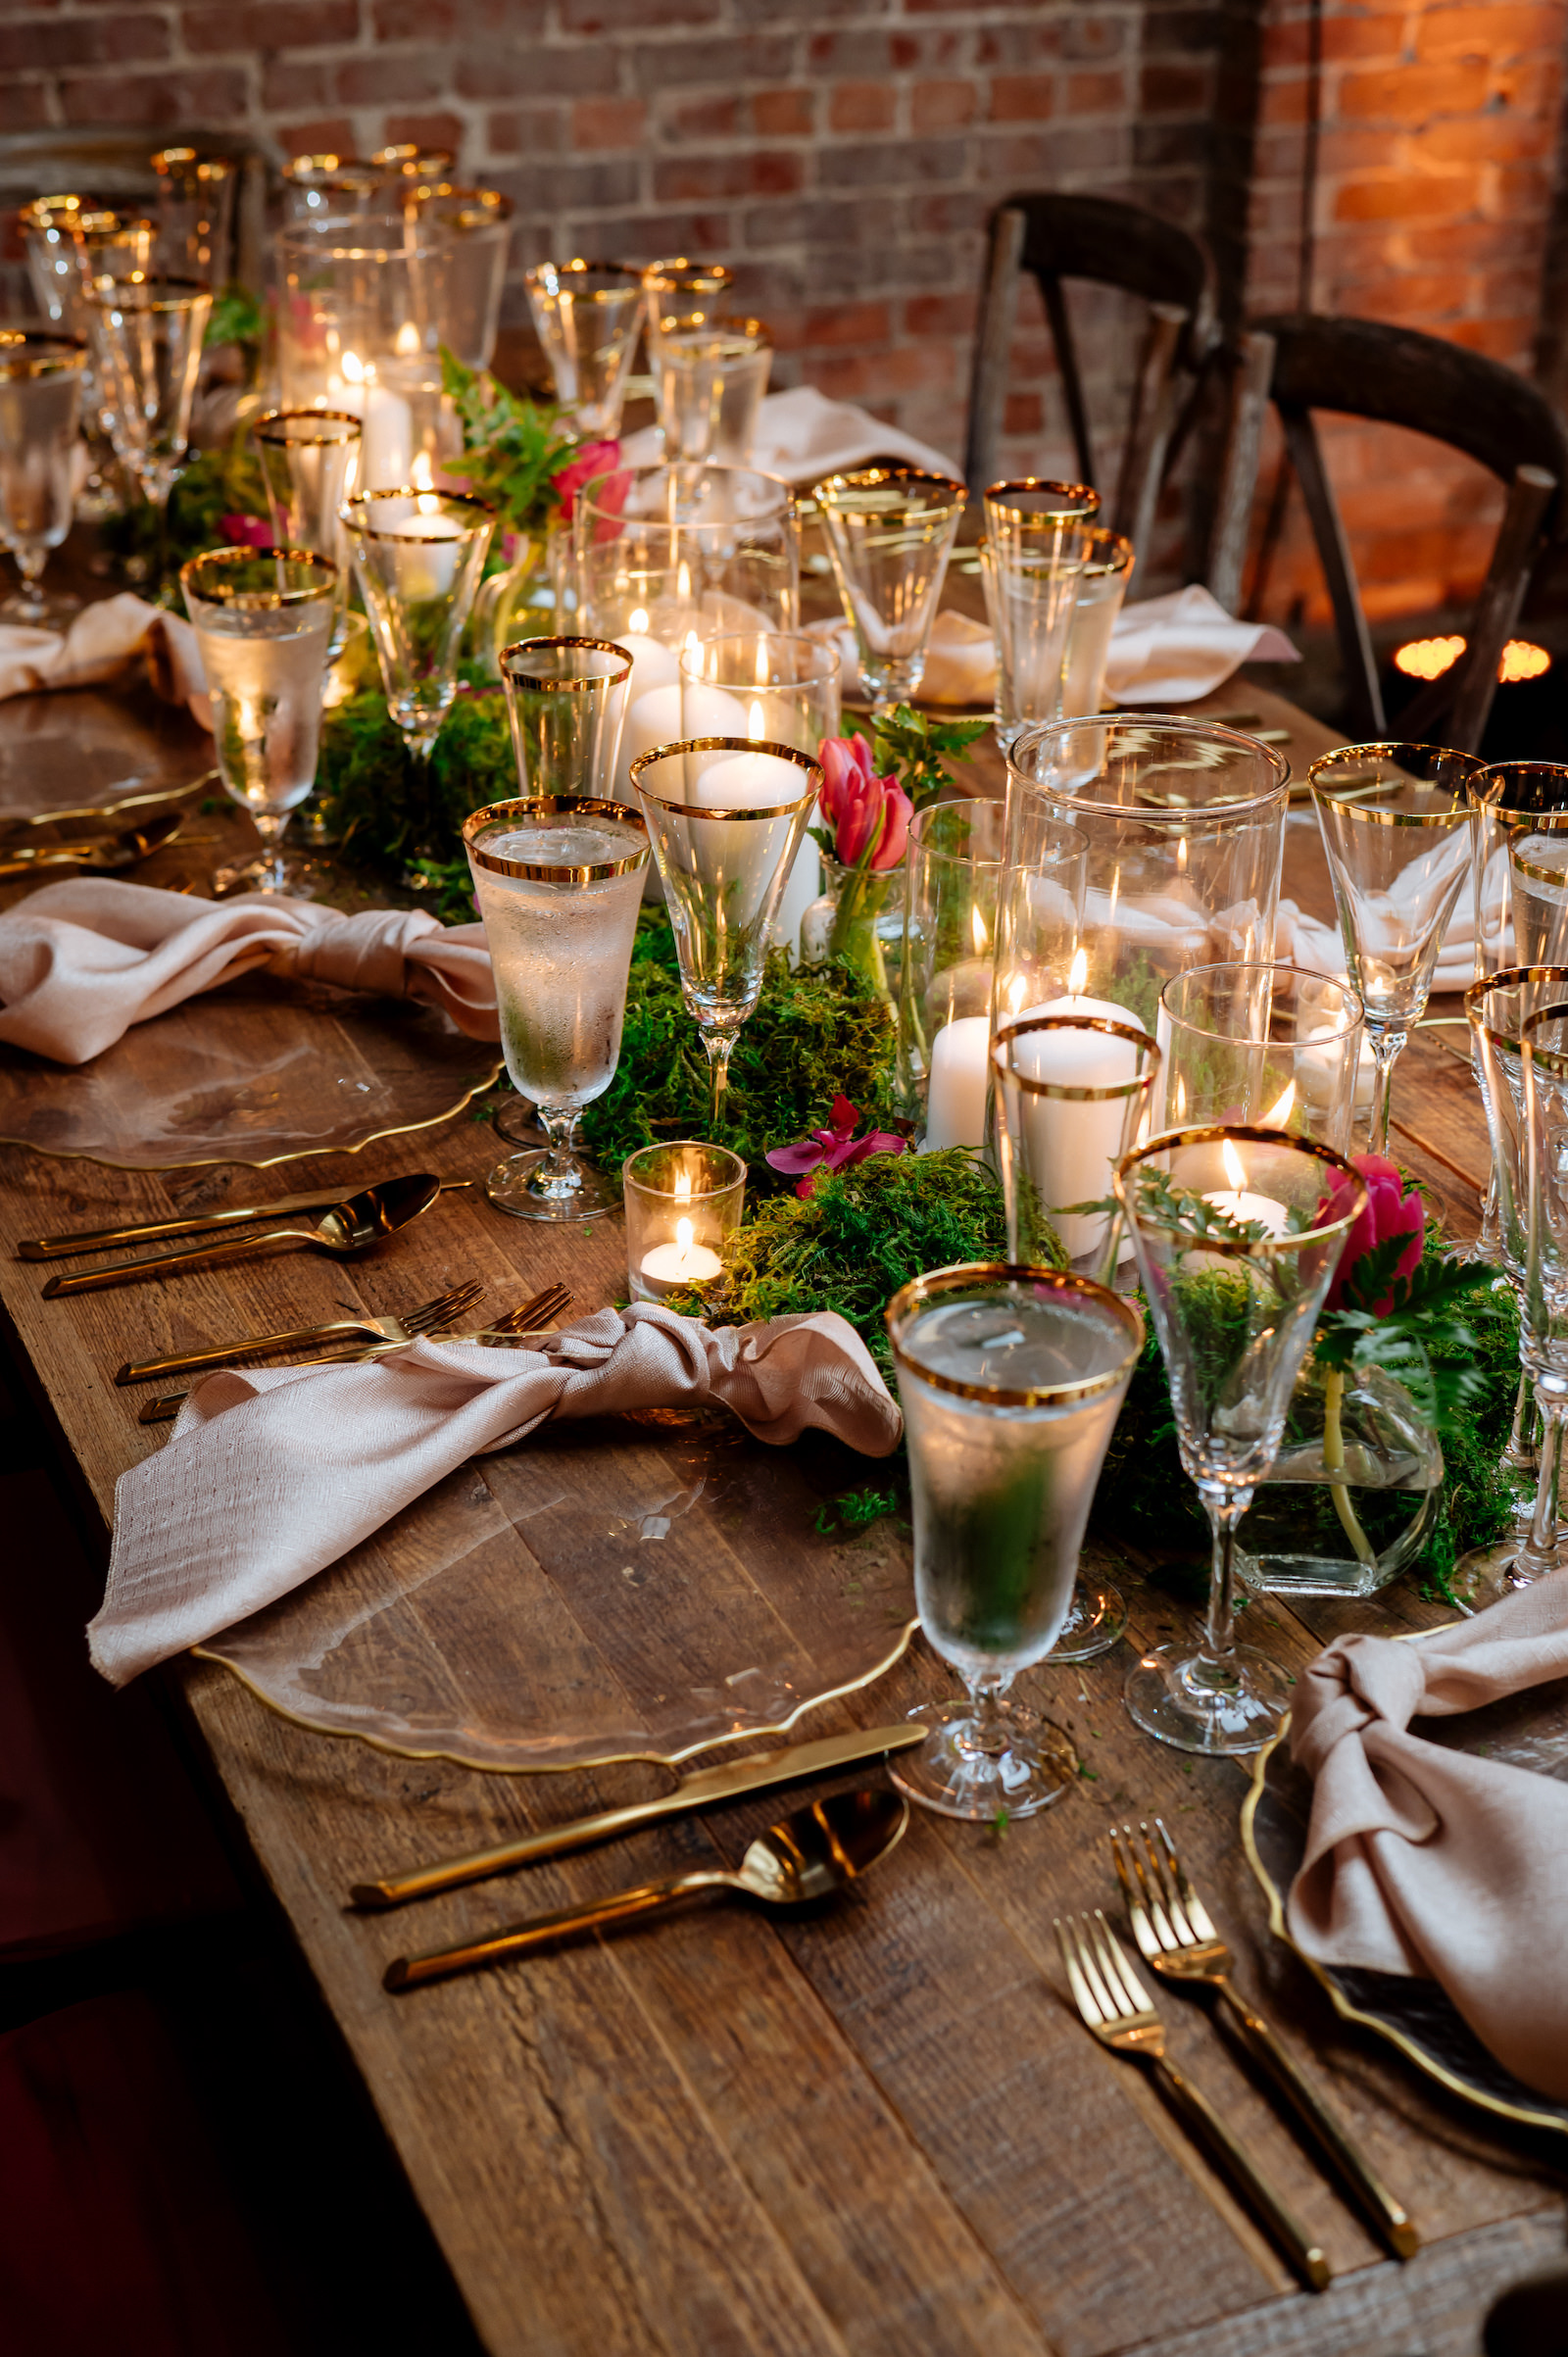 Wood Farm Feasting Tables with Moss Centerpieces with Pink Tulips and Candles   Tampa Wedding Reception Place Setting with Gold Rimmed Glassware and Gold Flatware with Gold Rim Glass Charger Plate by Kate Ryan Event Rentals